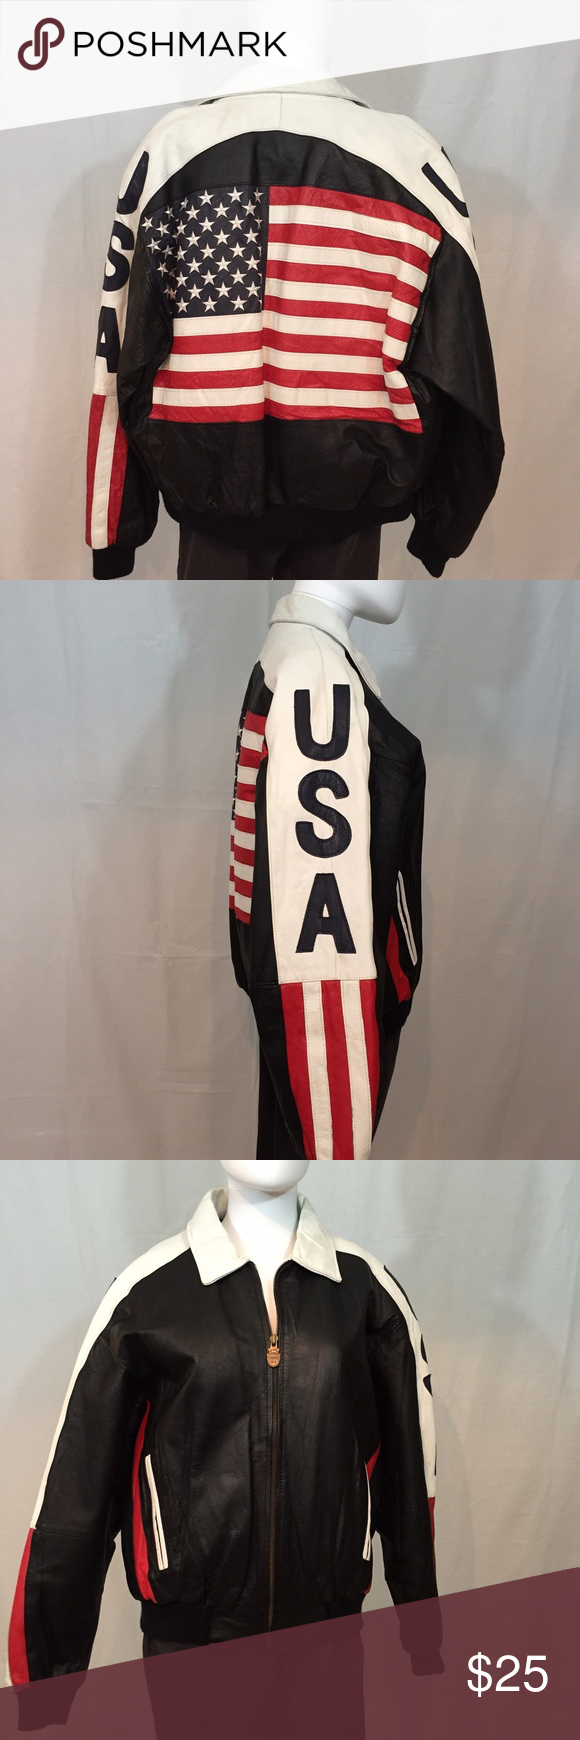 Men's leather USA jacket Men's USA flag leather jacket Jackets & Coats